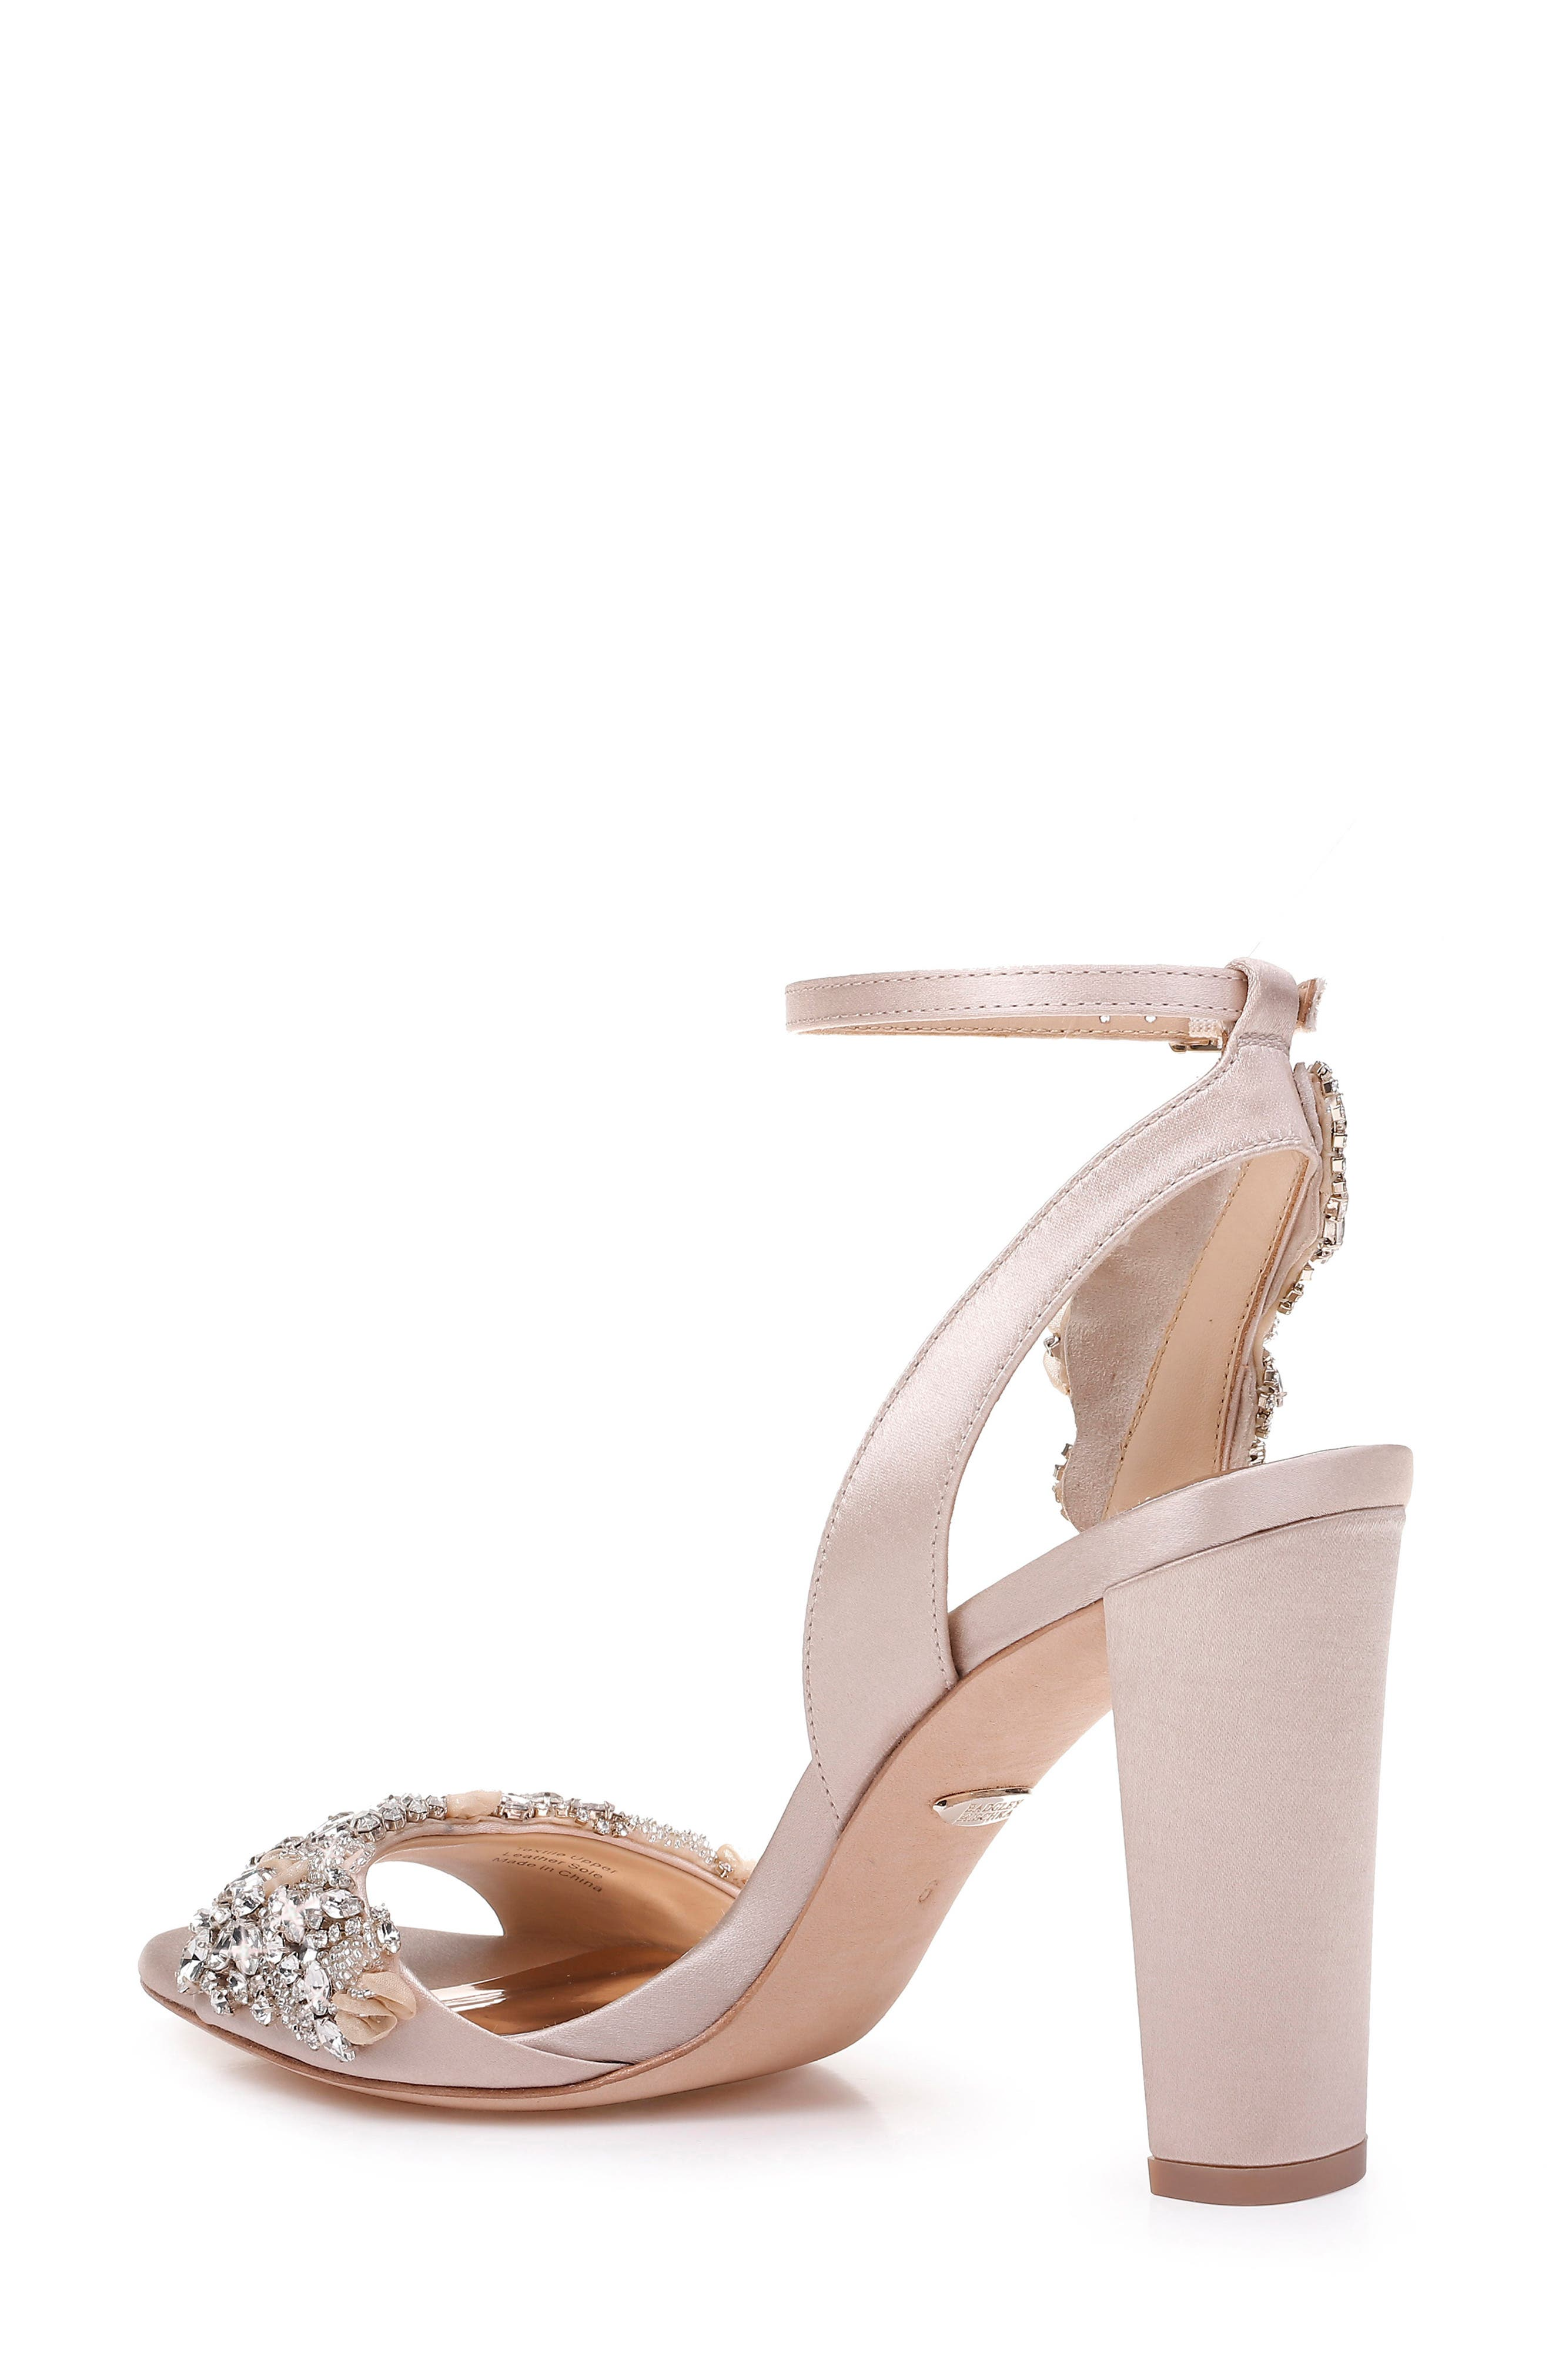 Badgley Mischka Libby Ankle Strap Sandal,                             Alternate thumbnail 2, color,                             NUDE SATIN